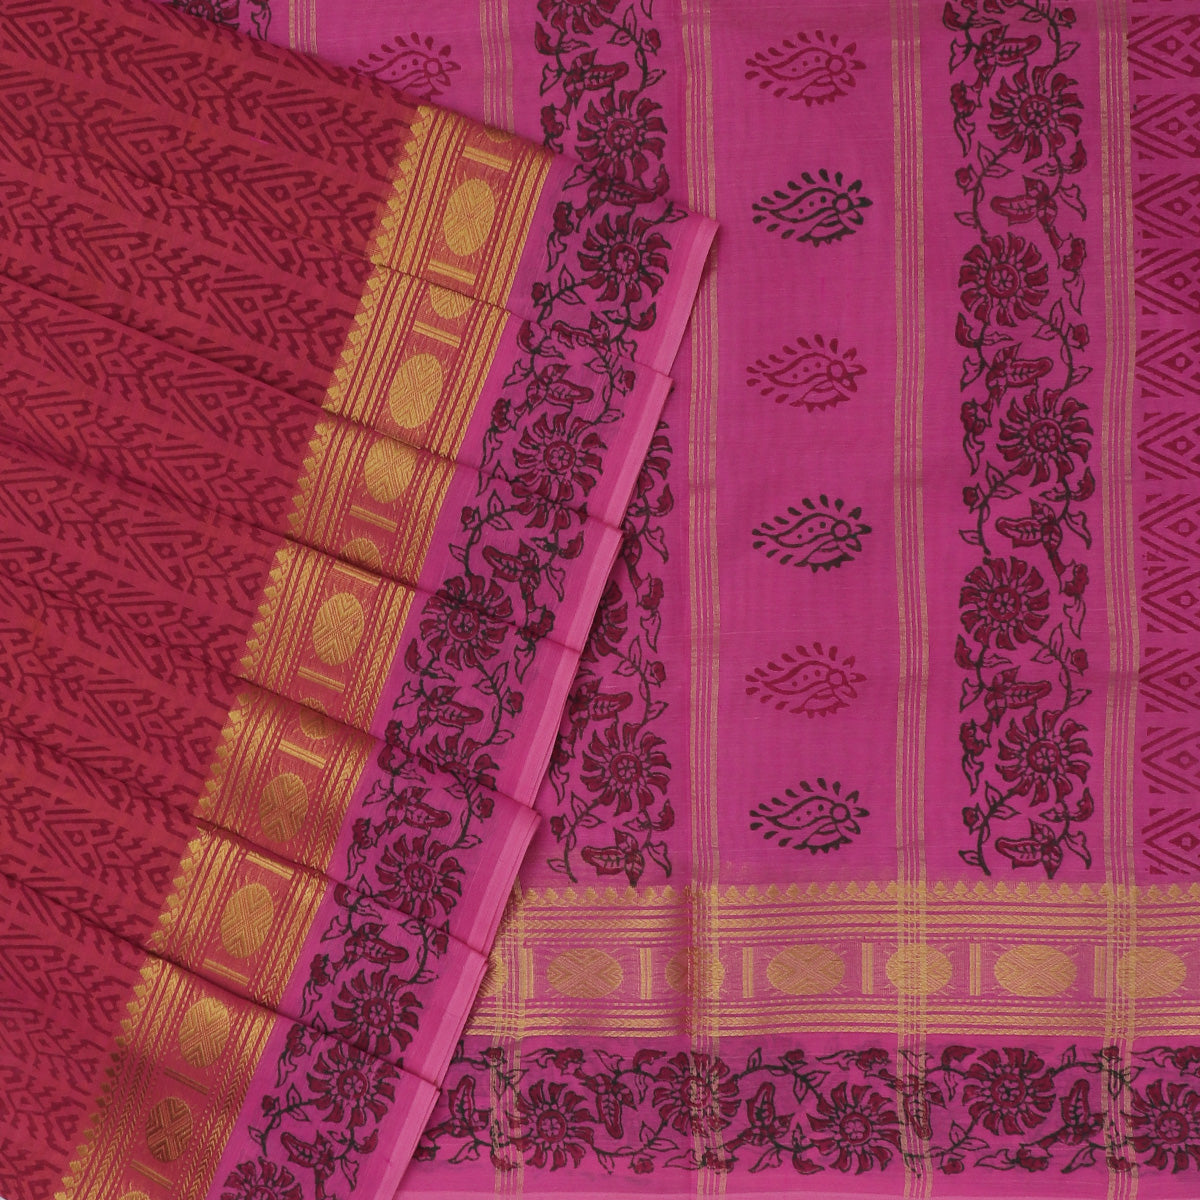 Printed Silk Cotton Saree Pink and Orange Dual shade with Rudraksha Zari border